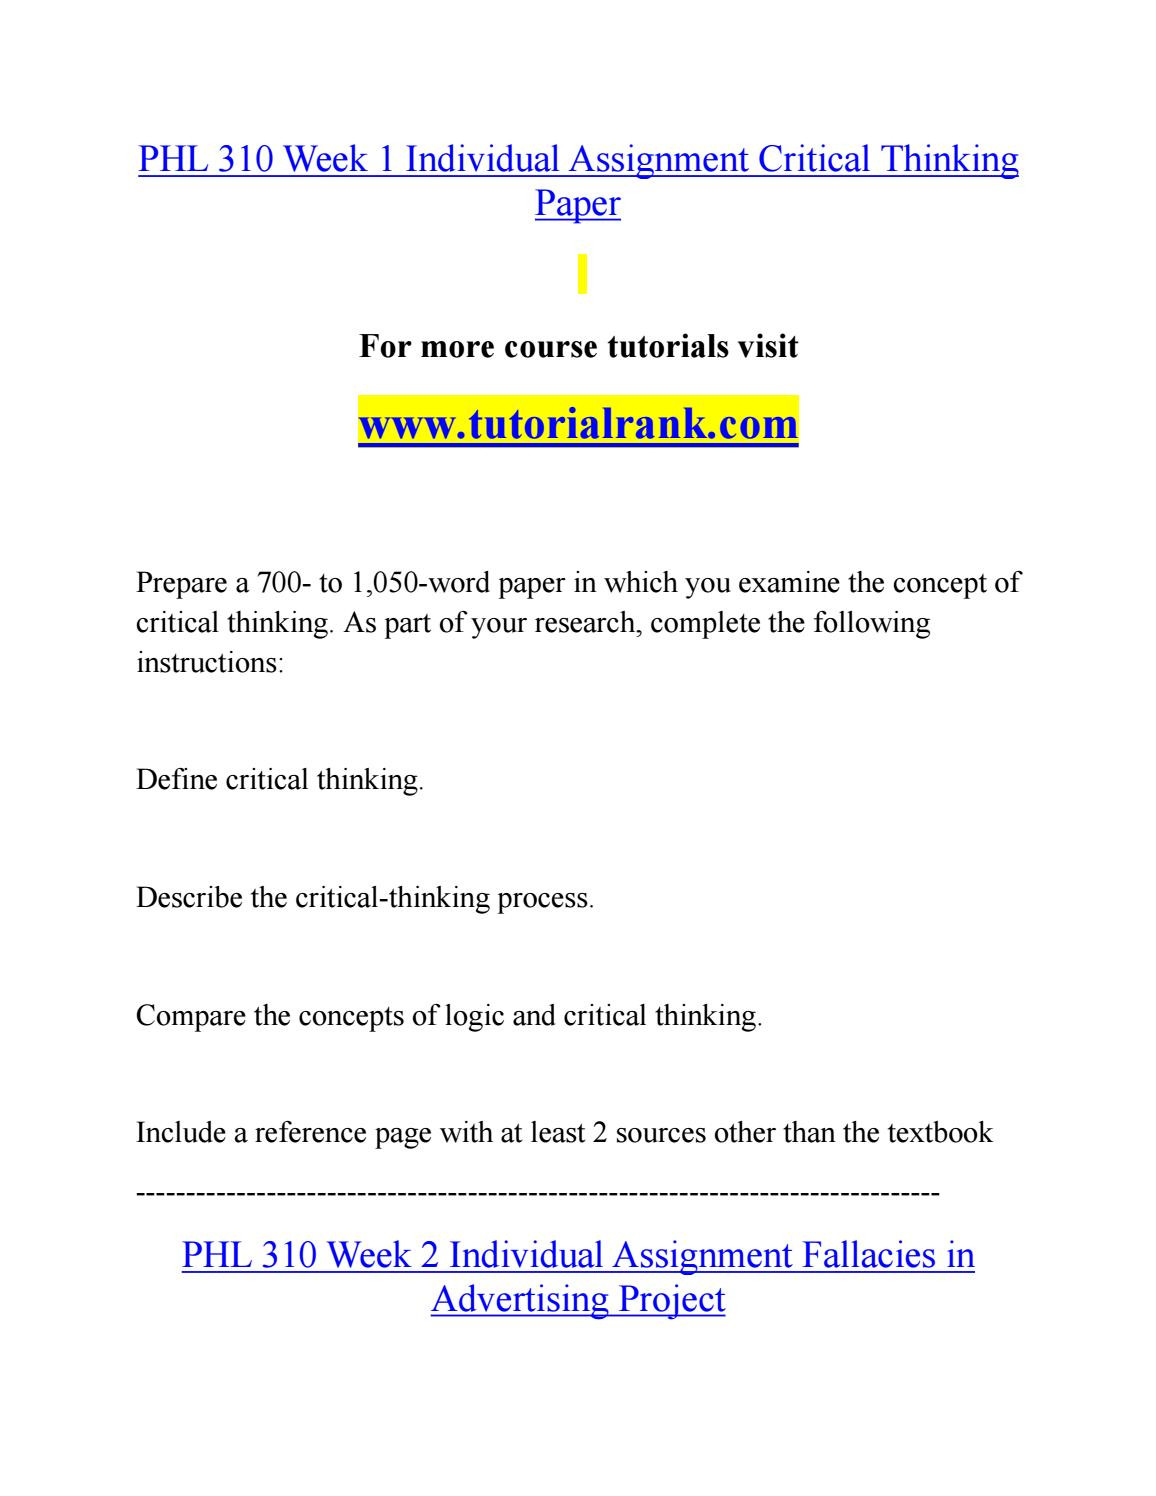 Logical Fallacies Worksheet with Answers Phl 310 Teaching Effectively Tutorialrank by